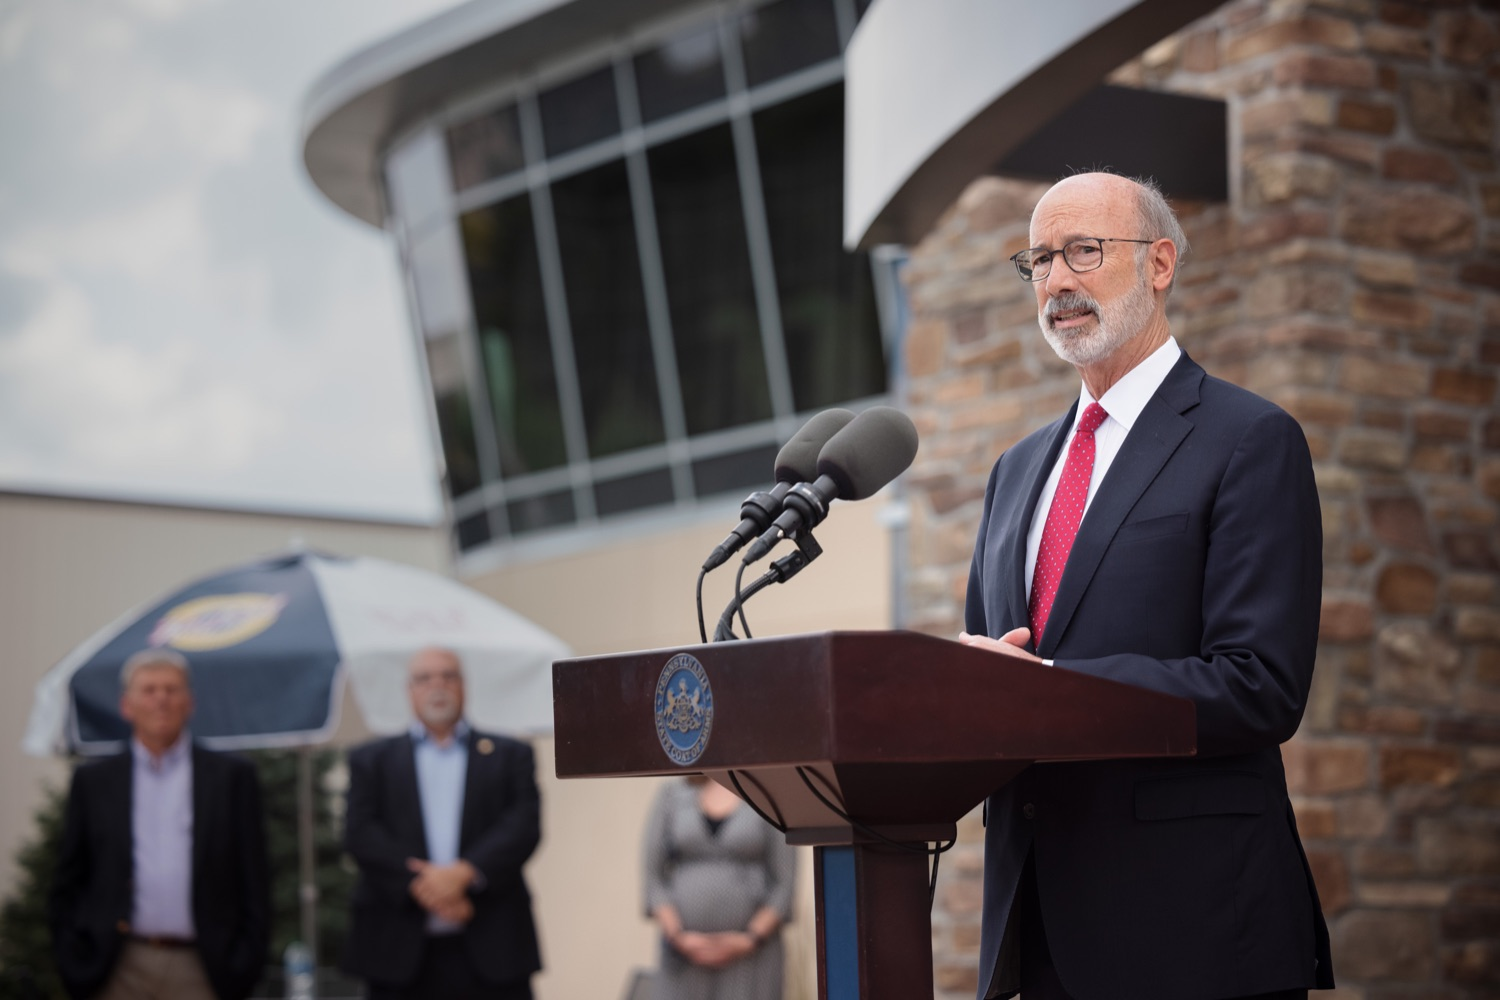 """<a href=""""https://filesource.wostreaming.net/commonwealthofpa/photo/20126_gov_economicDevelopment_dz_012.jpg"""" target=""""_blank"""">⇣Download Photo<br></a>Pennsylvania Governor Tom Wolf speaking with the press.  Governor Tom Wolf joined Clemens Food Group leaders, Agriculture Secretary Russell Redding, Sen. Maria Collett, Rep. Steve Malagari and members of the Governors Action Team today to tour the construction of the companys new facility in Montgomery County. The Wolf Administration supported the project which will expand the business operations and create new jobs in the region. Hatfield, PA   October 8, 2021"""